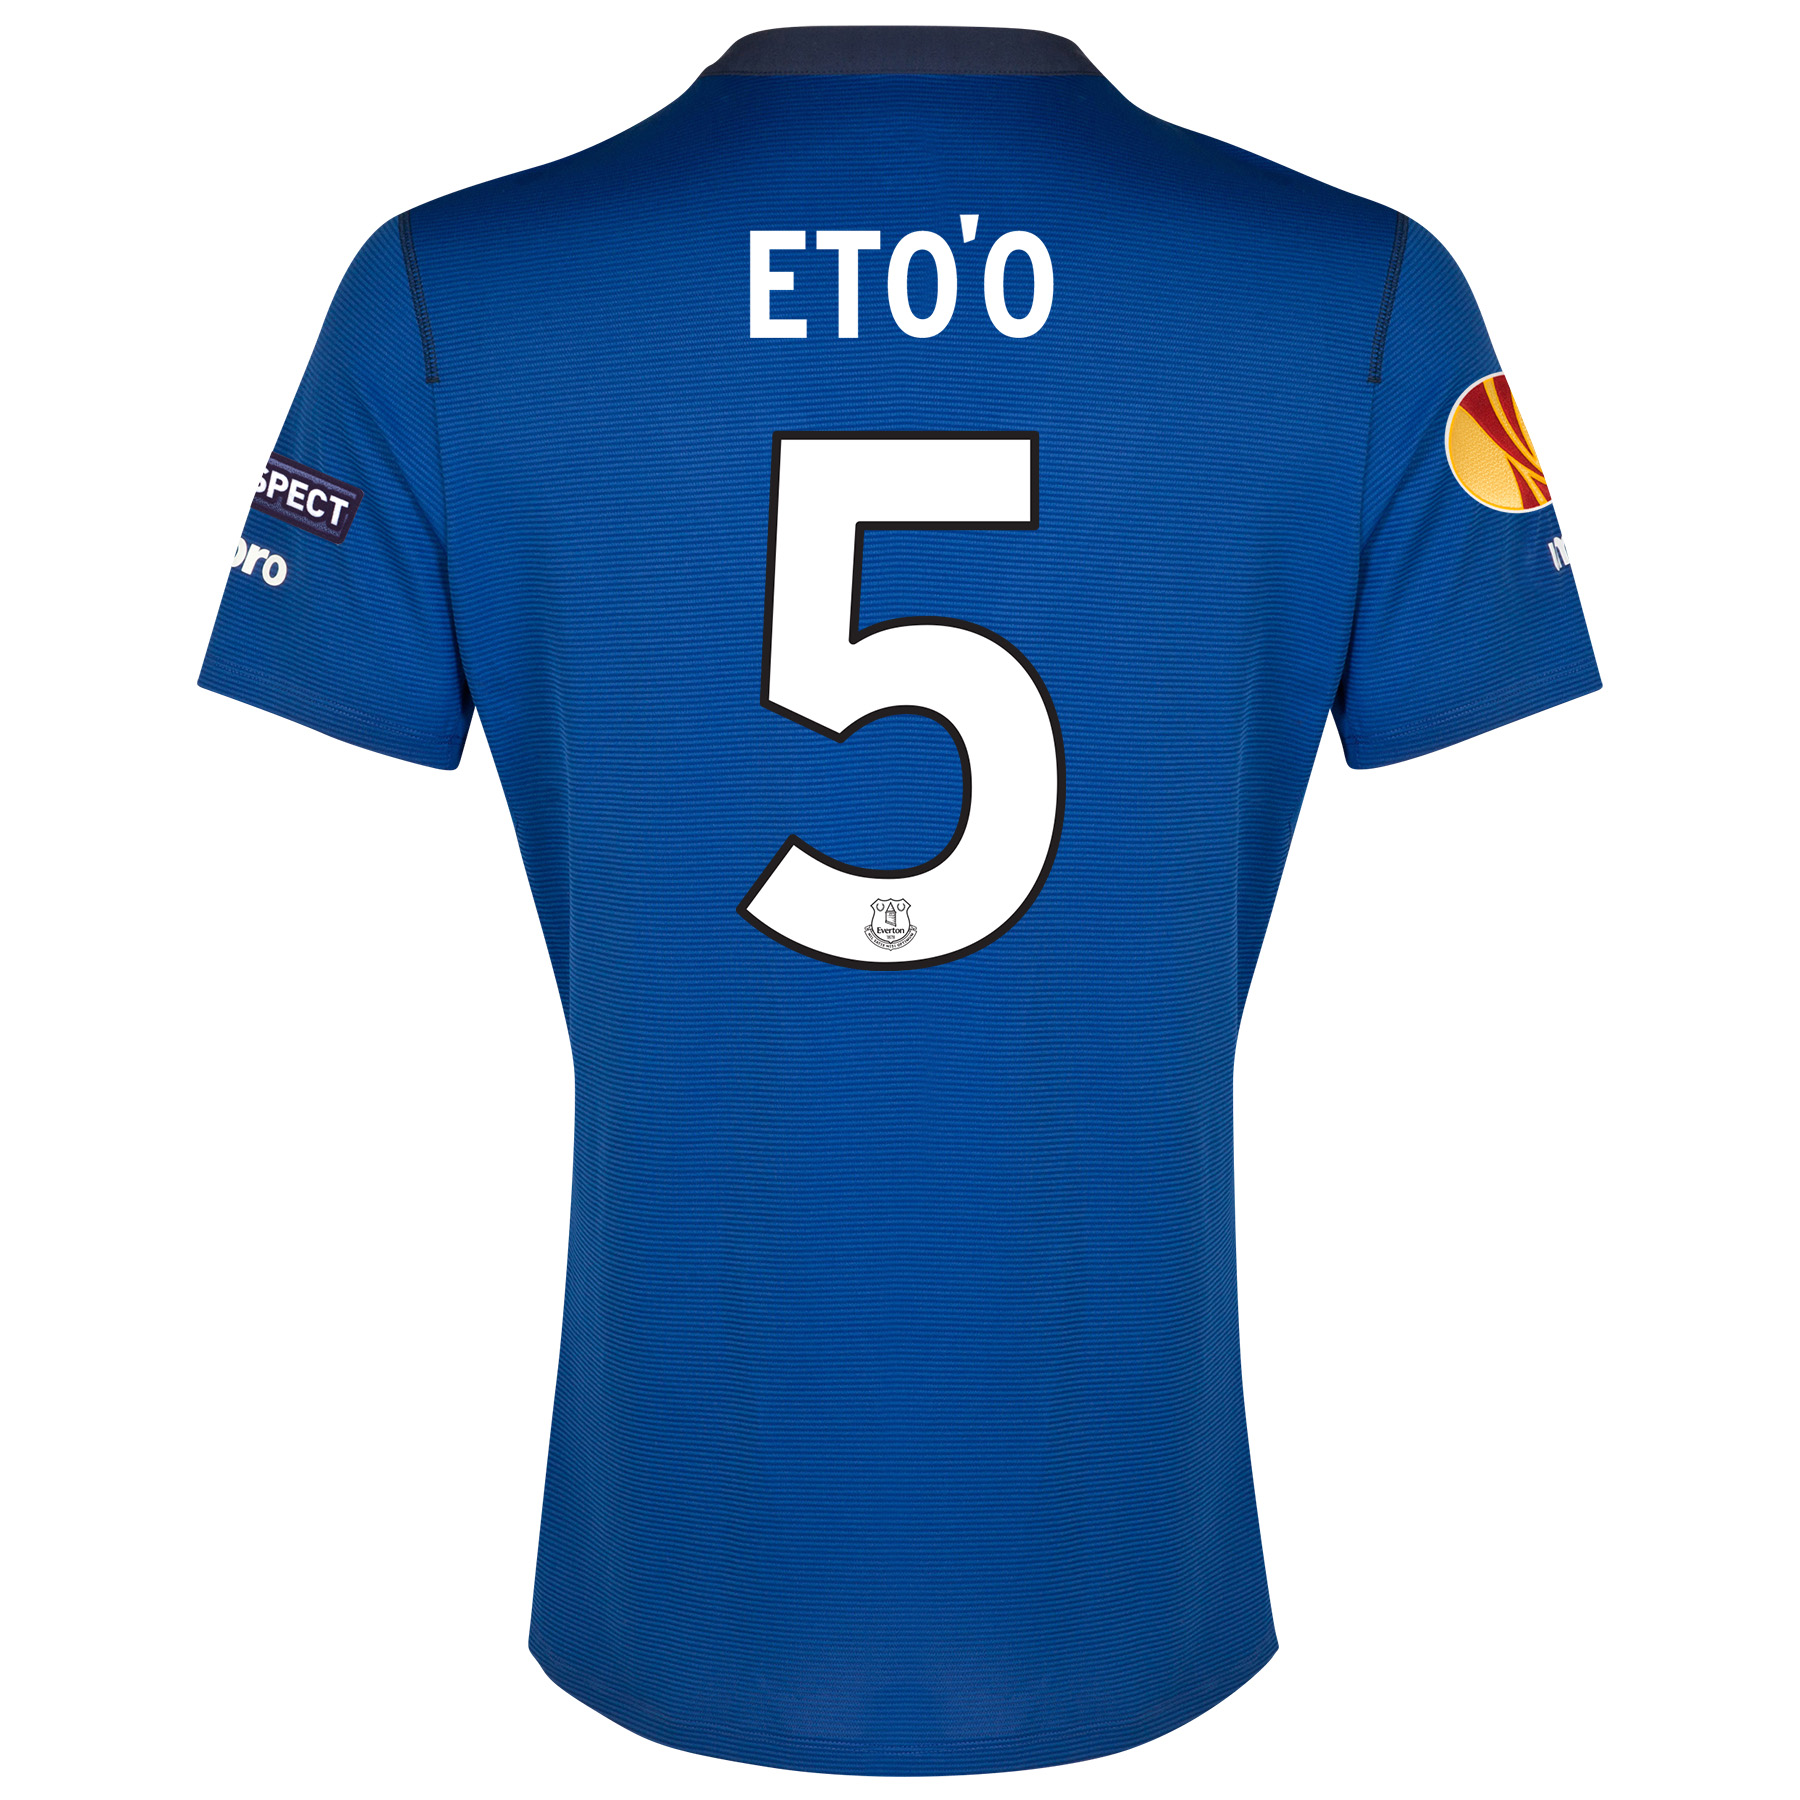 Everton UEFA Europa League SS Home Shirt 2014/15 - Junior with Eto'o 5 printing